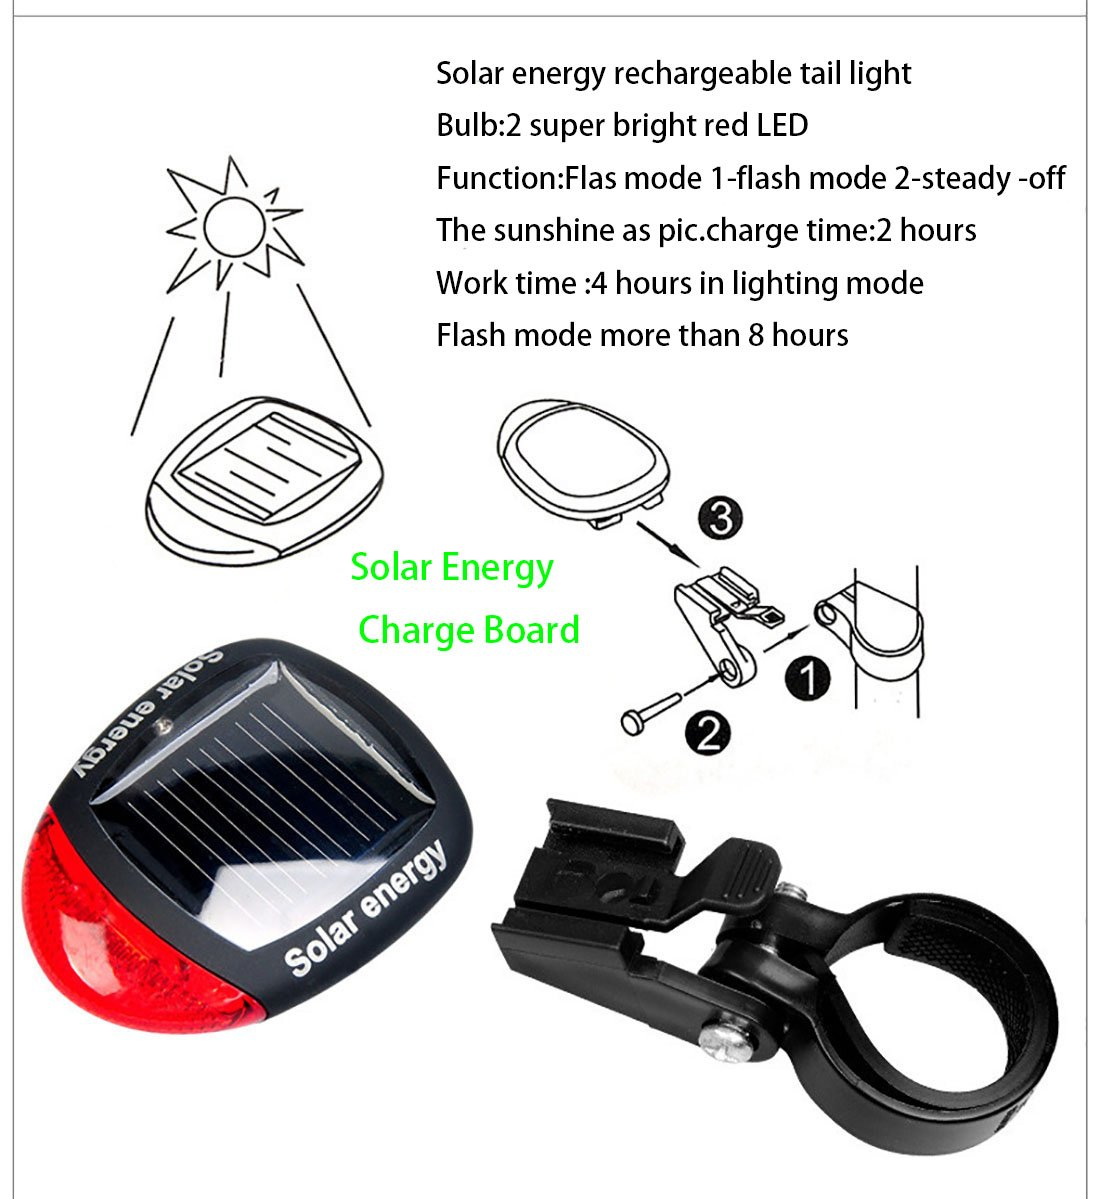 Ultra Bright Bicycle Lights Set - Front Headlights & Horn & Back Taillights, Two(Solar and USB)-in-One Rechargeable LED Bike Front Lights, Waterproof & Safety Road, 1200mAH/1200 Lumens Head Lights. by Juxical (Image #5)